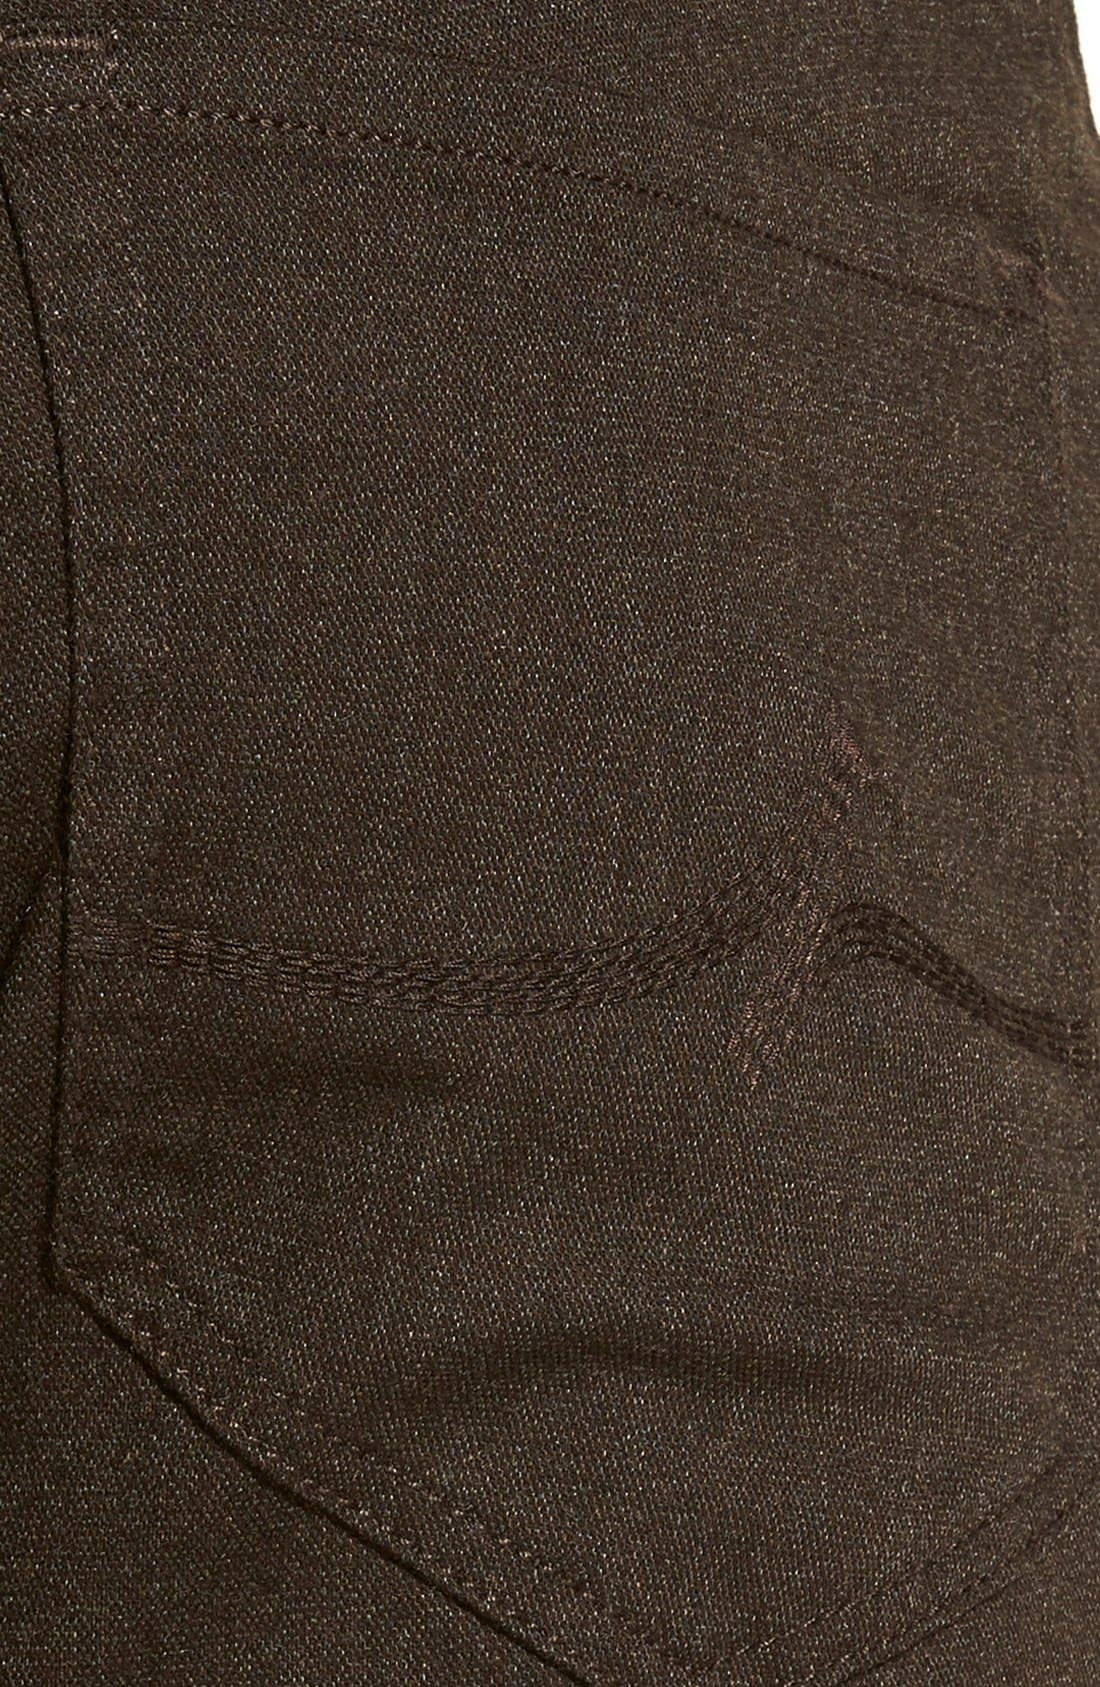 Alternate Image 4  - 34 Heritage 'Charisma' Relaxed Fit Jeans (Mocca Luxe)